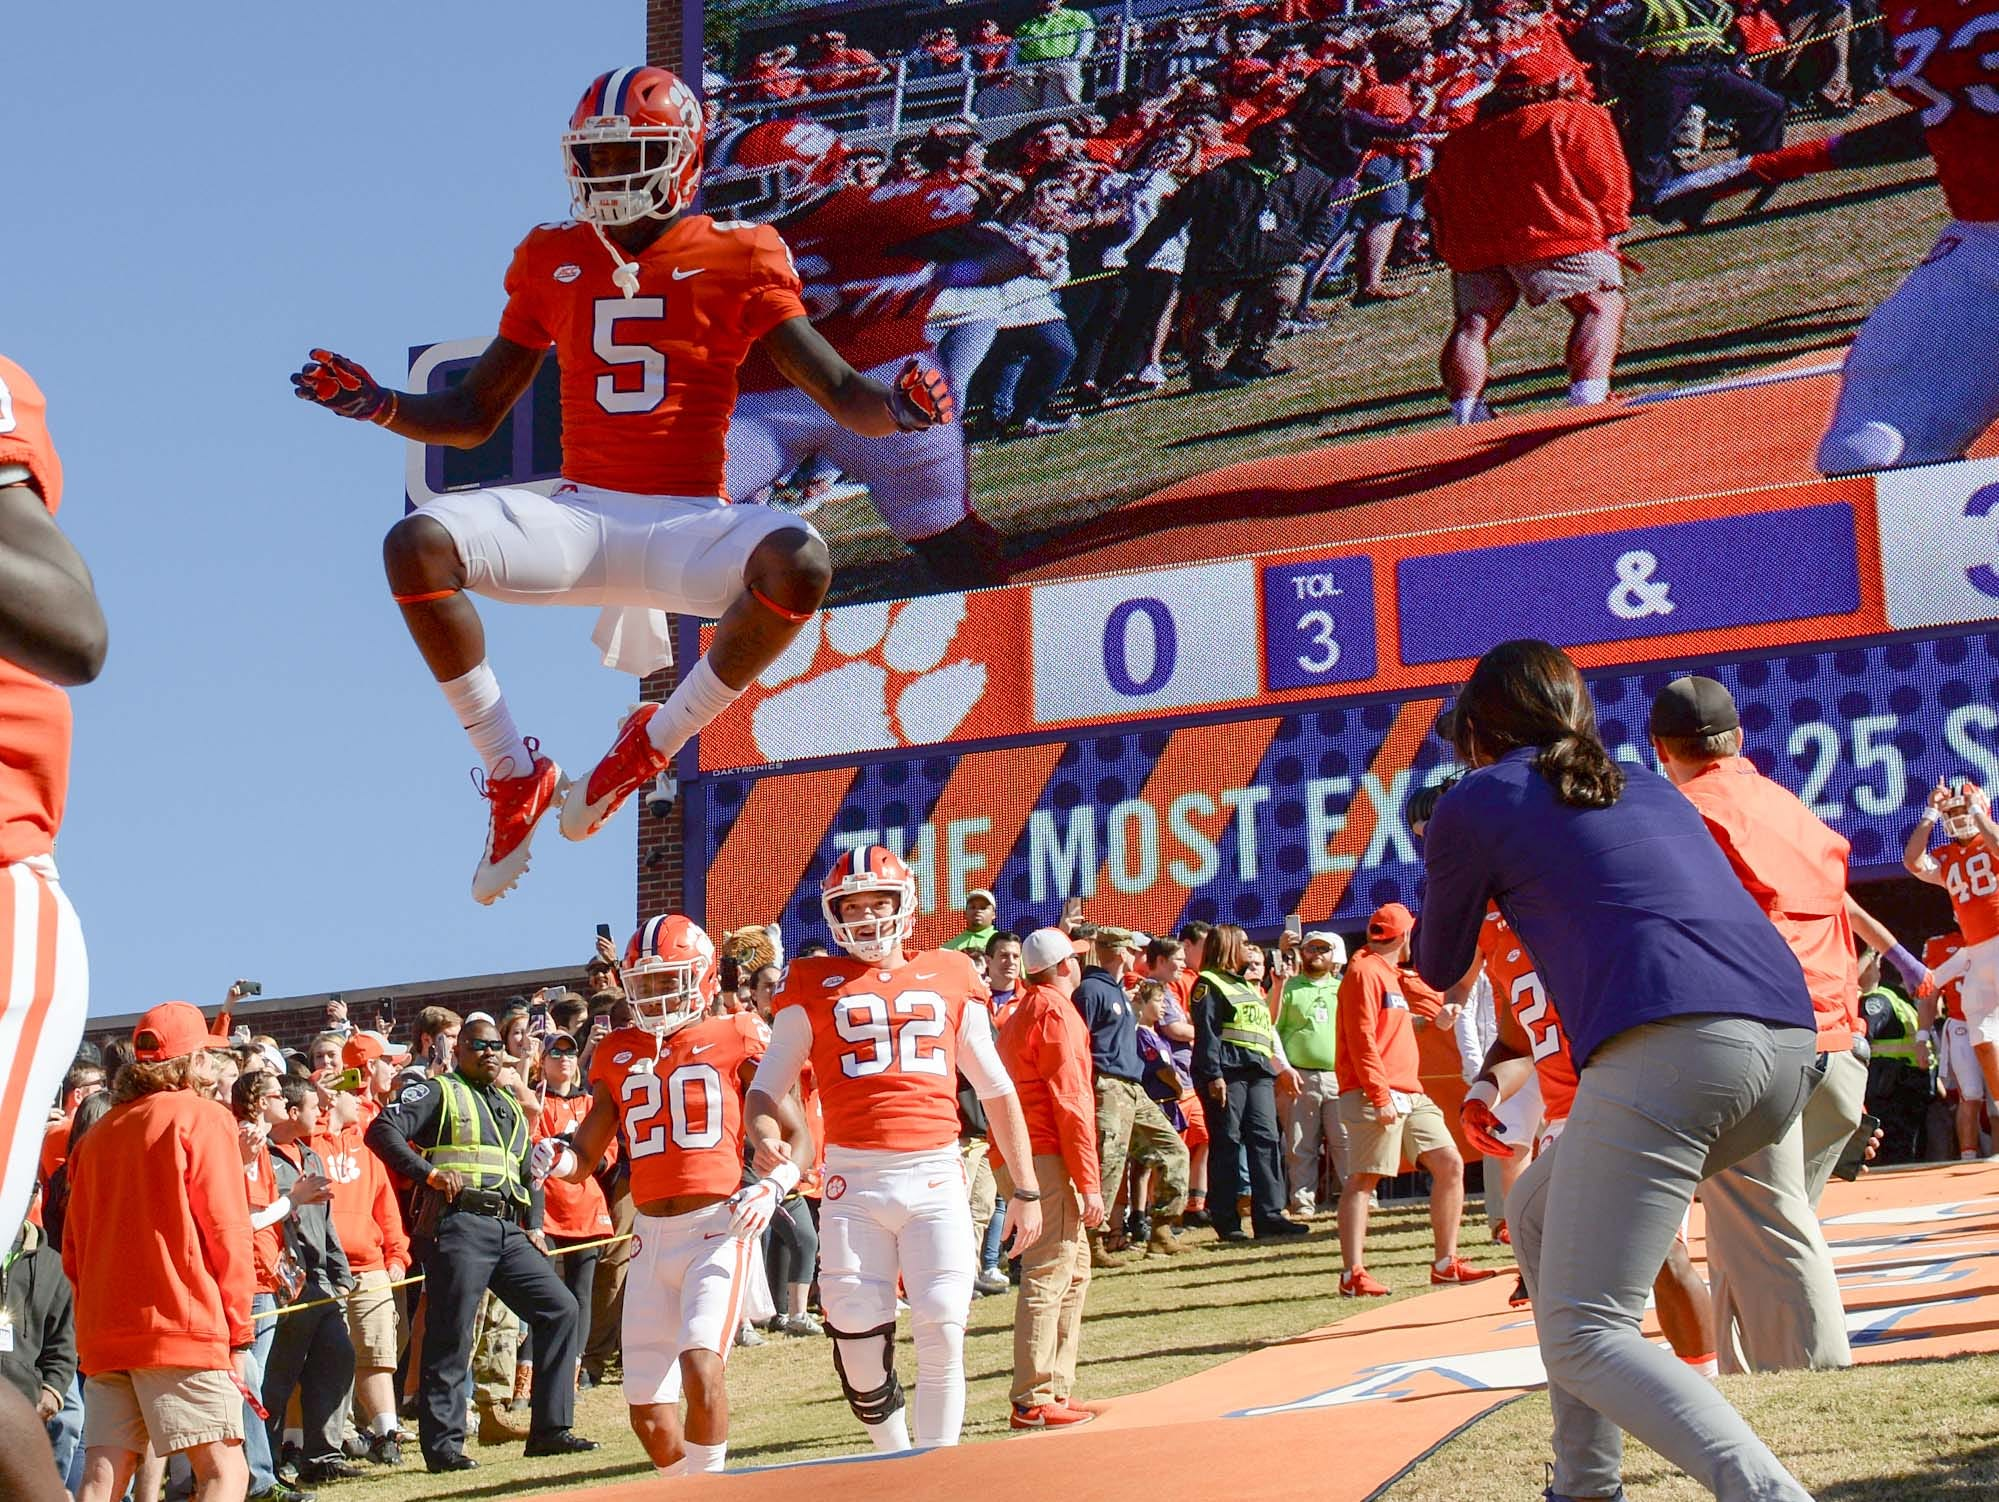 Clemson wide receiver Tee Higgins (5) leaps between running down the hill before the game with Louisville in Memorial Stadium on Saturday, November 3, 2018.